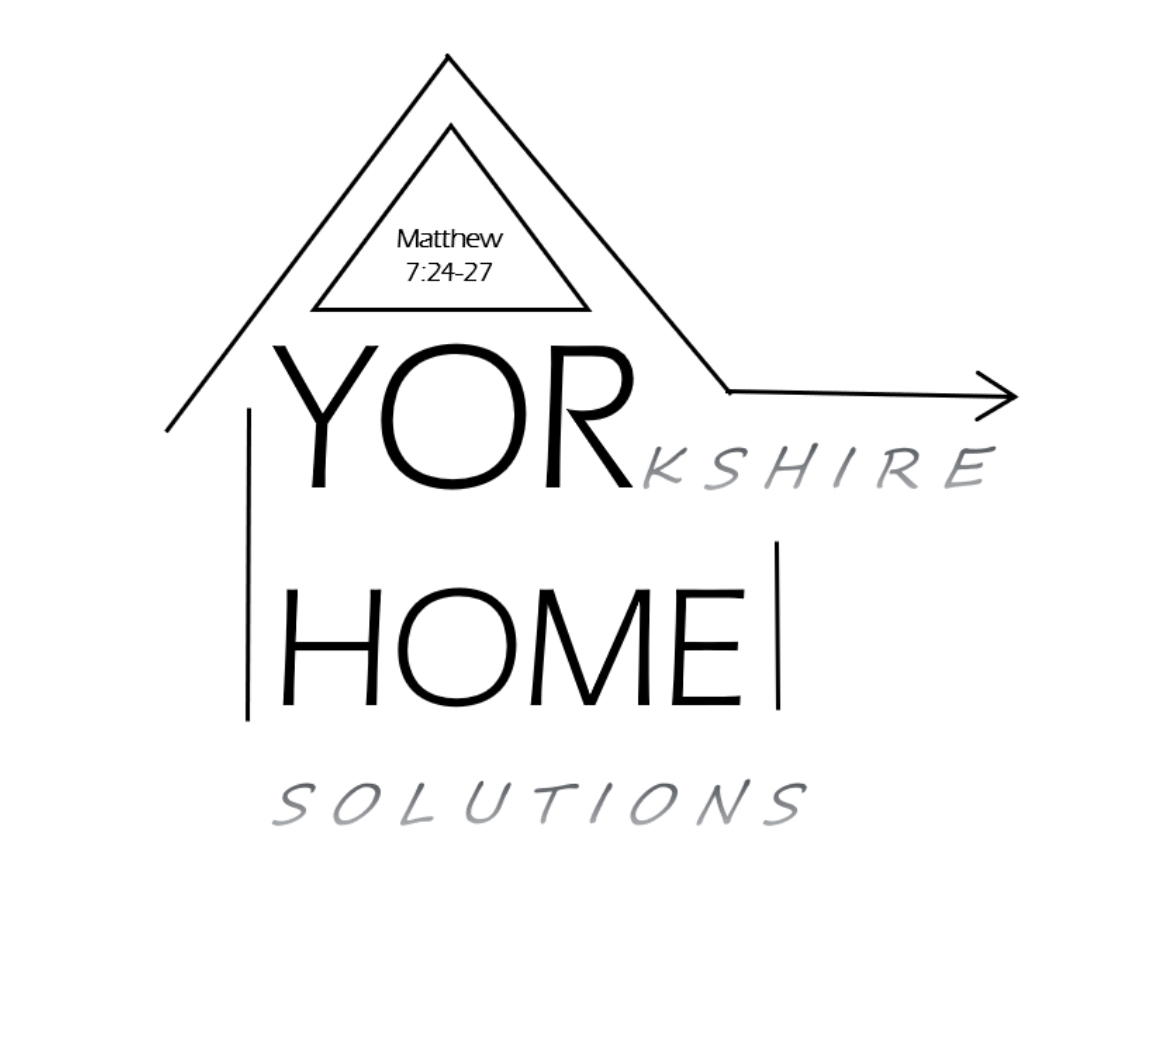 Yorkshire Home Solutions